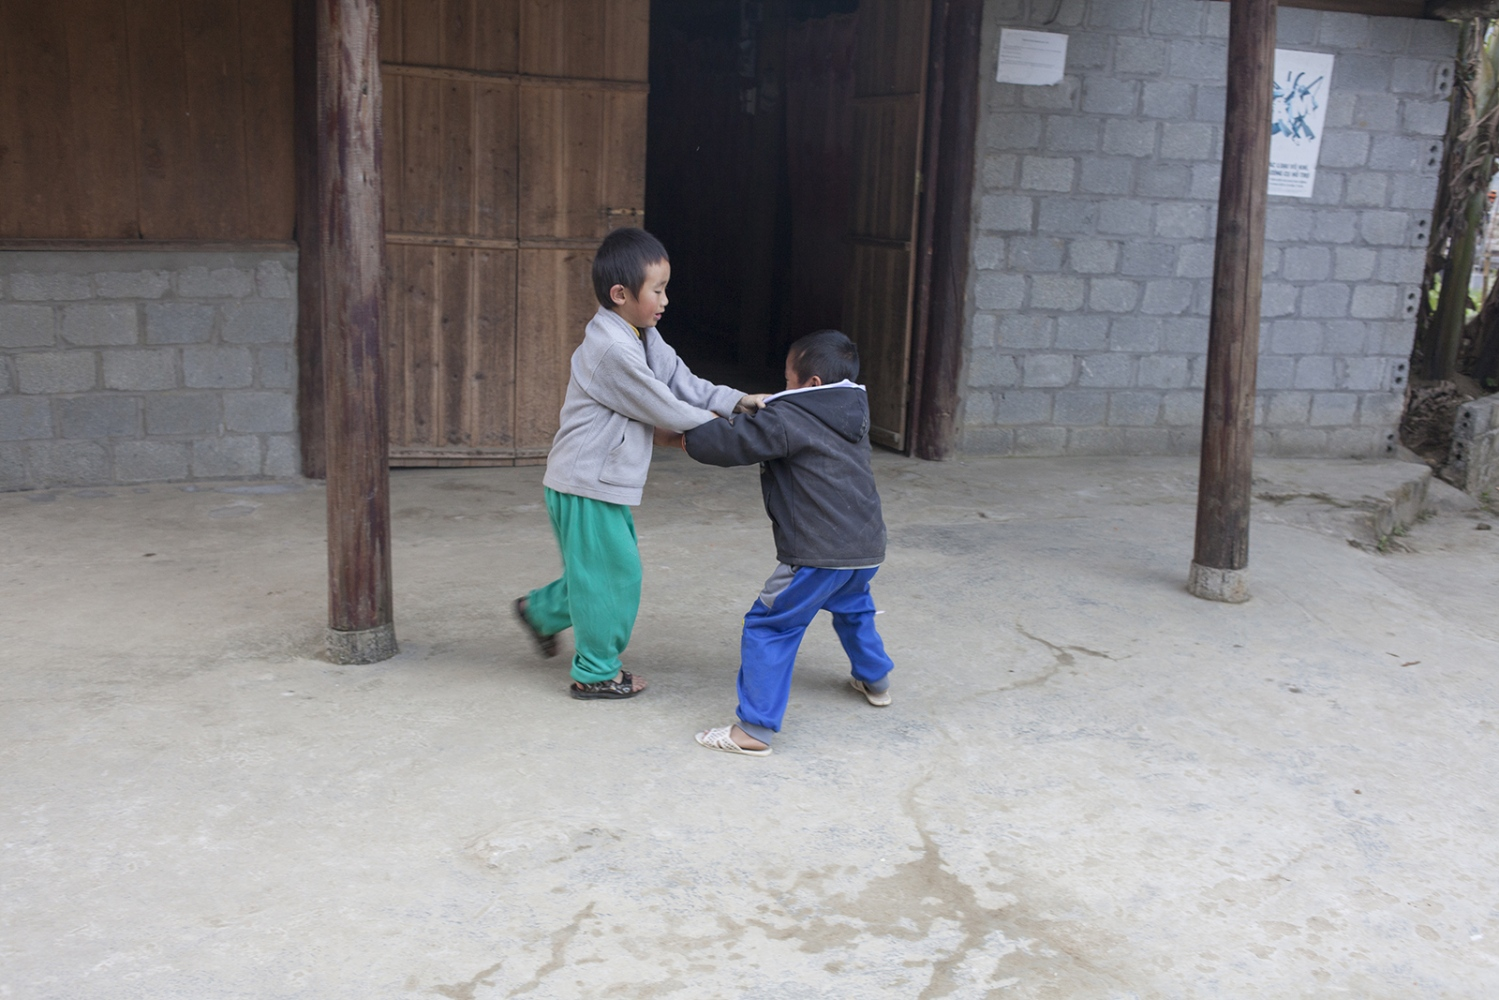 Two kids play fighting.